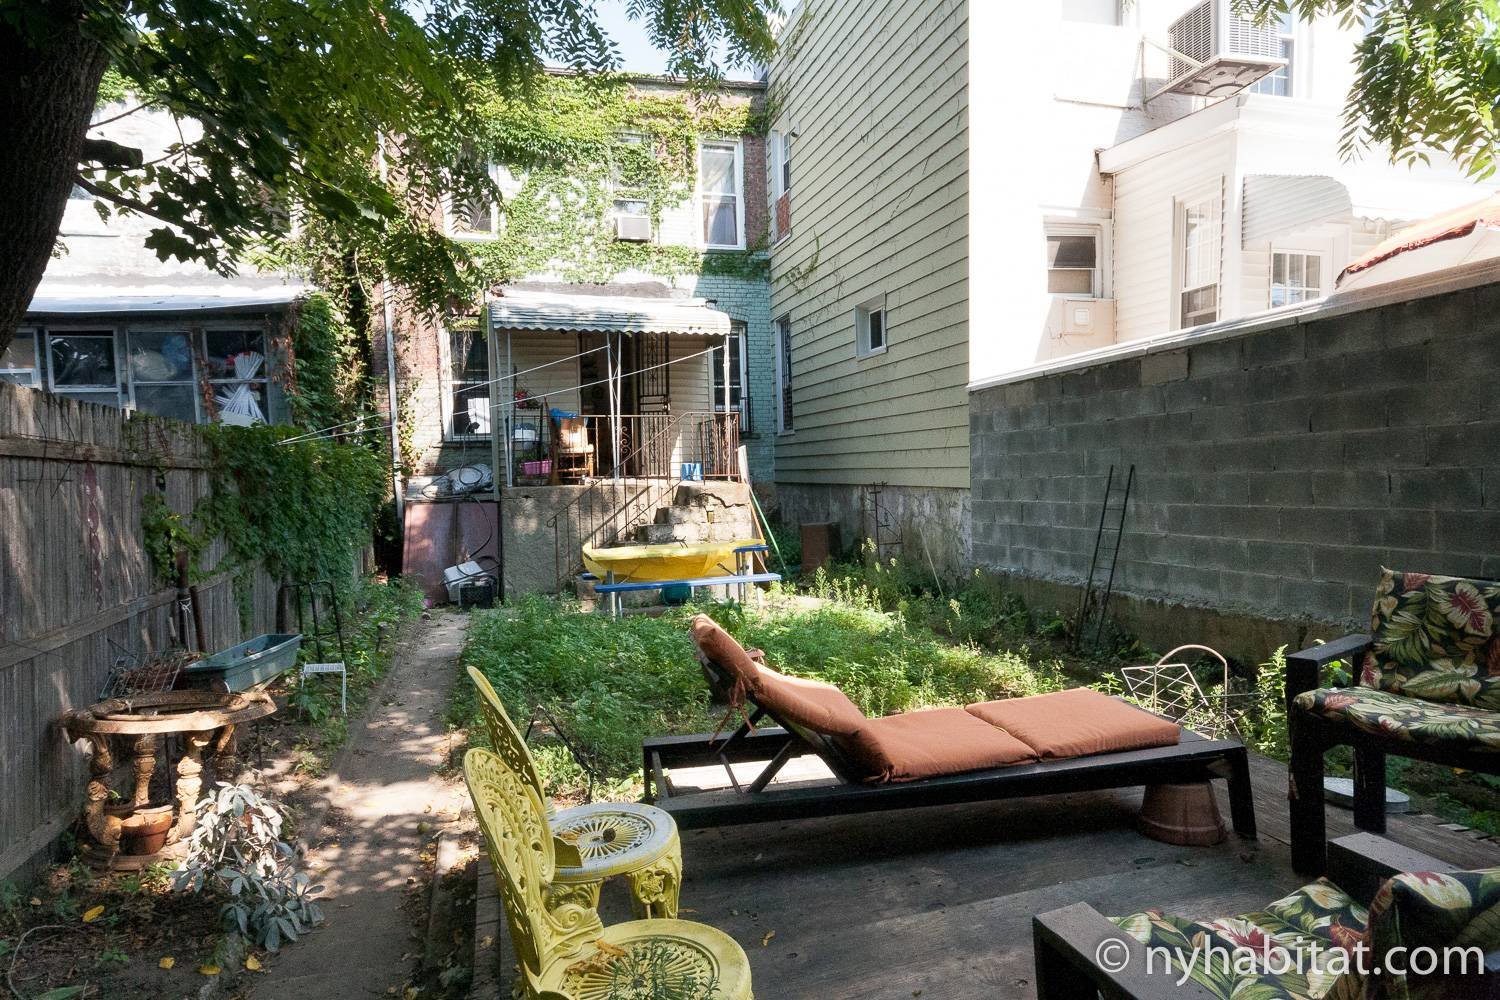 Image of backyard in NY-16268.